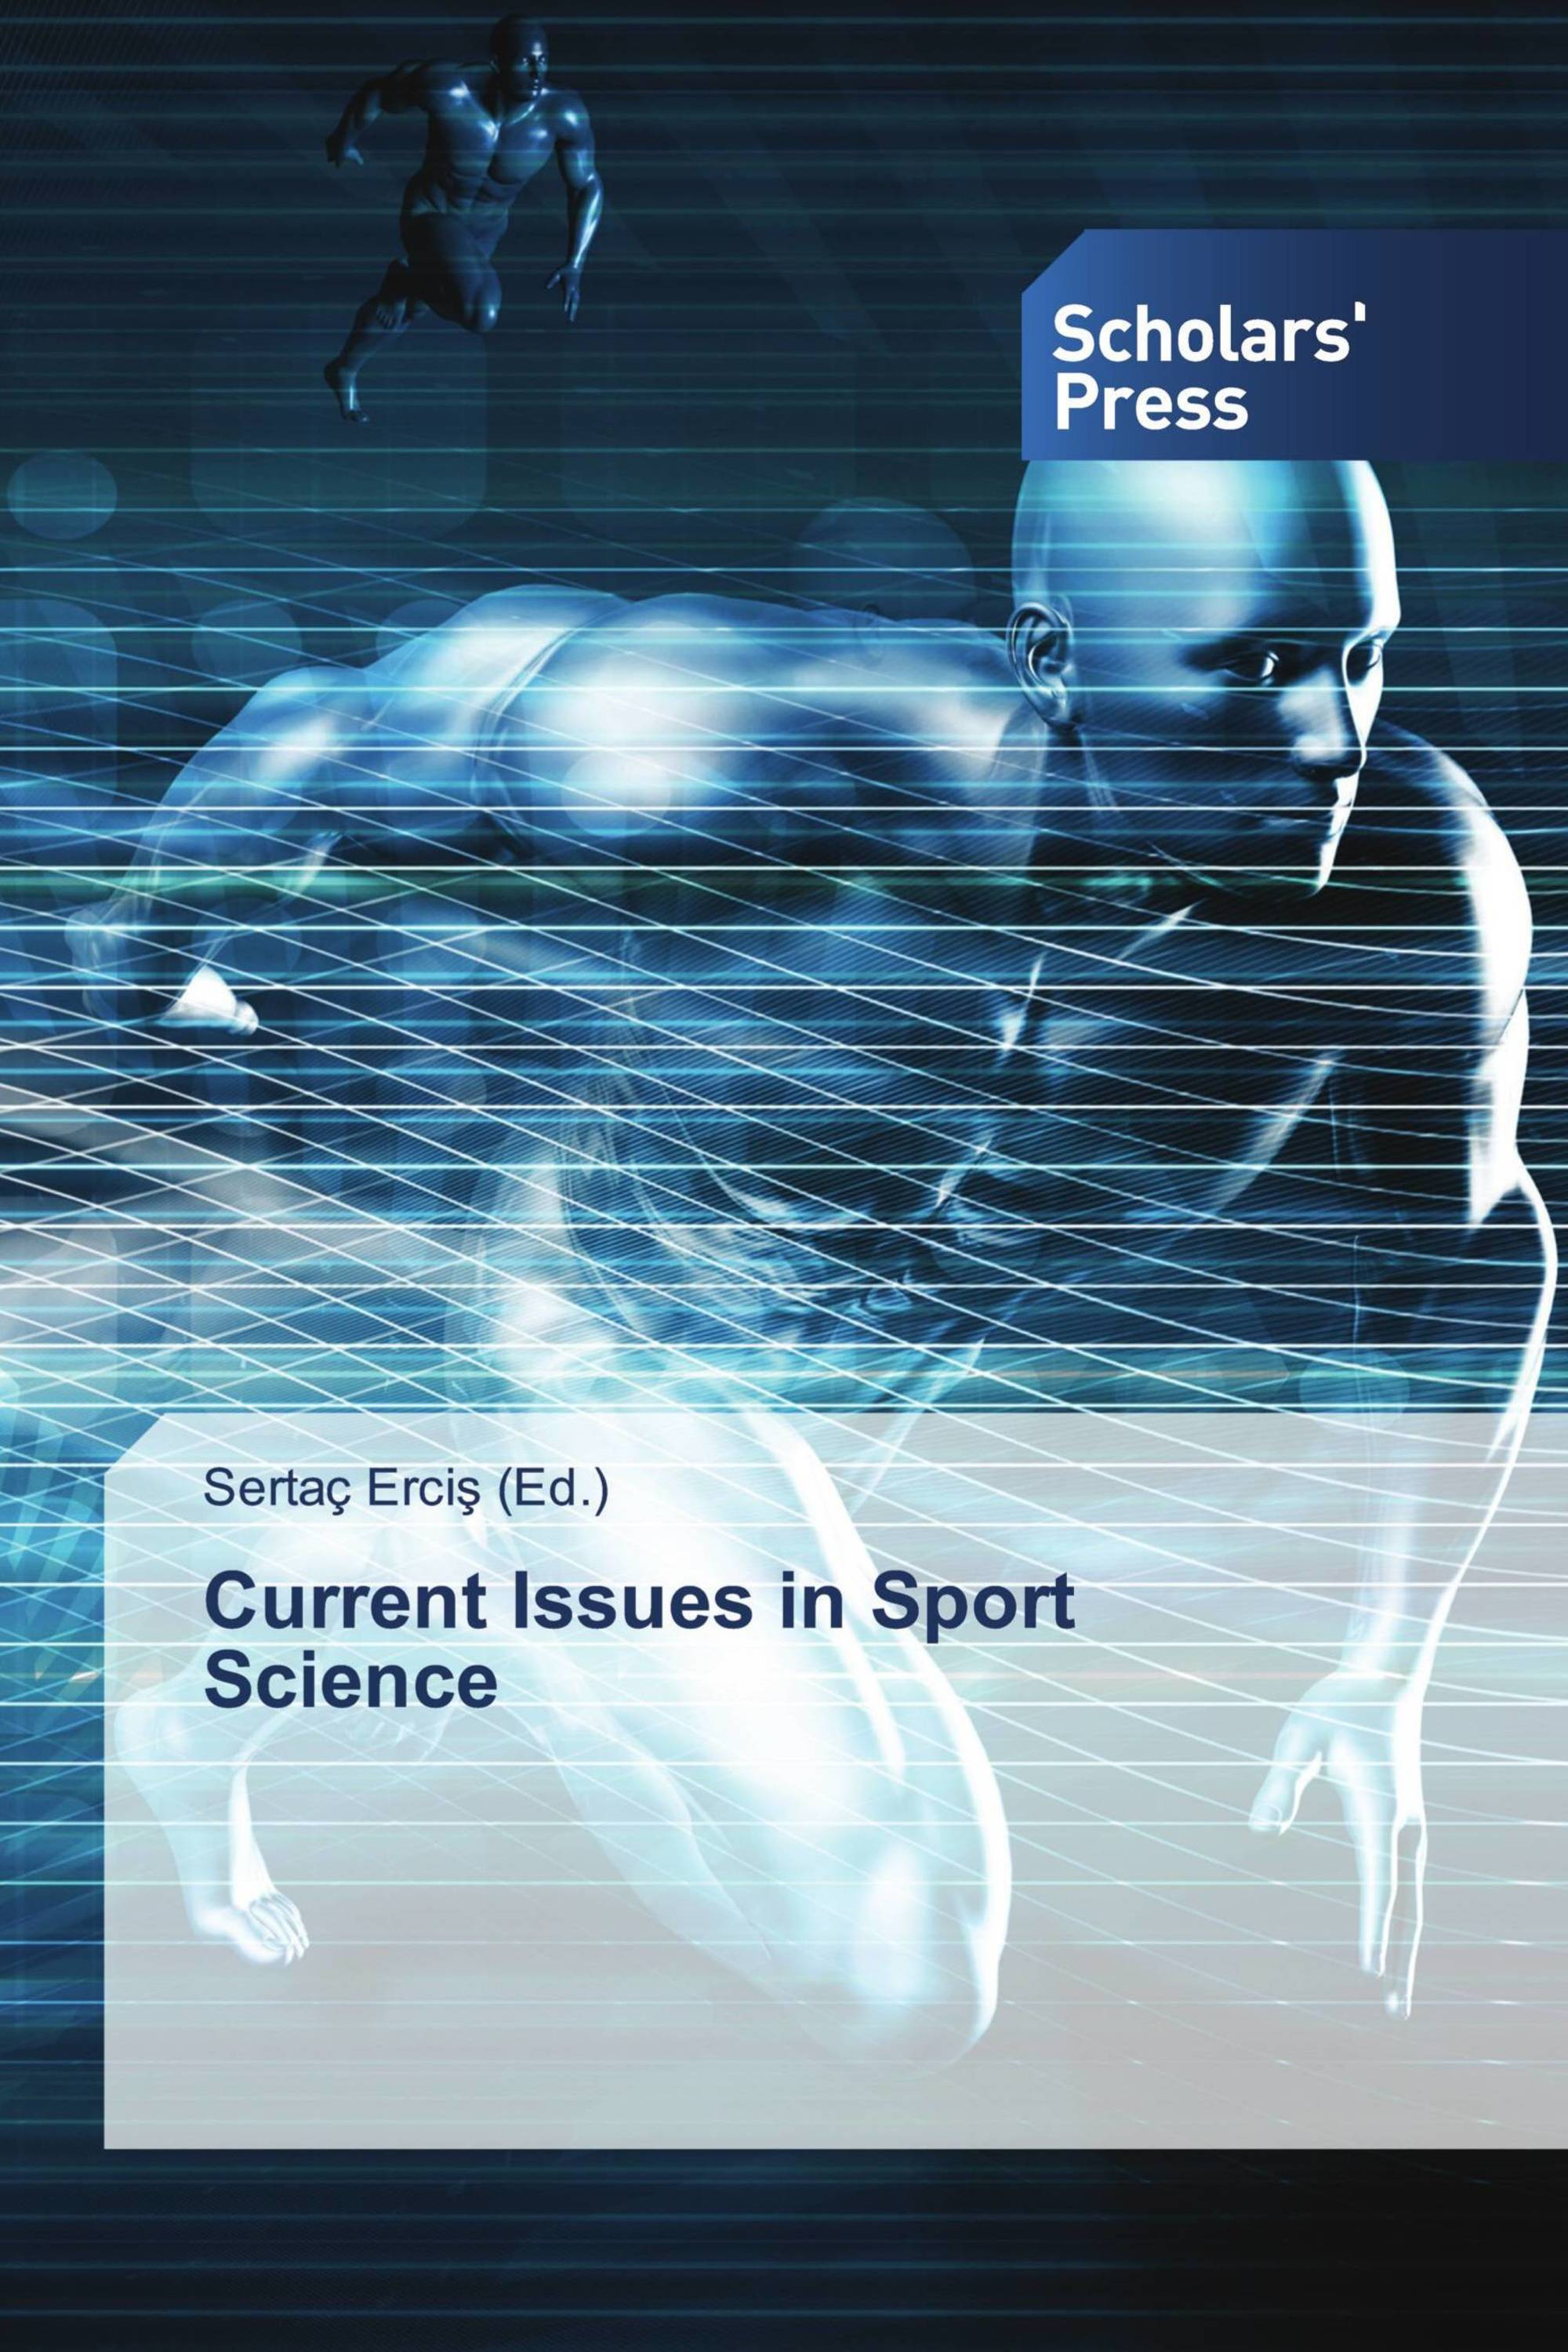 Current Issues in Sport Science